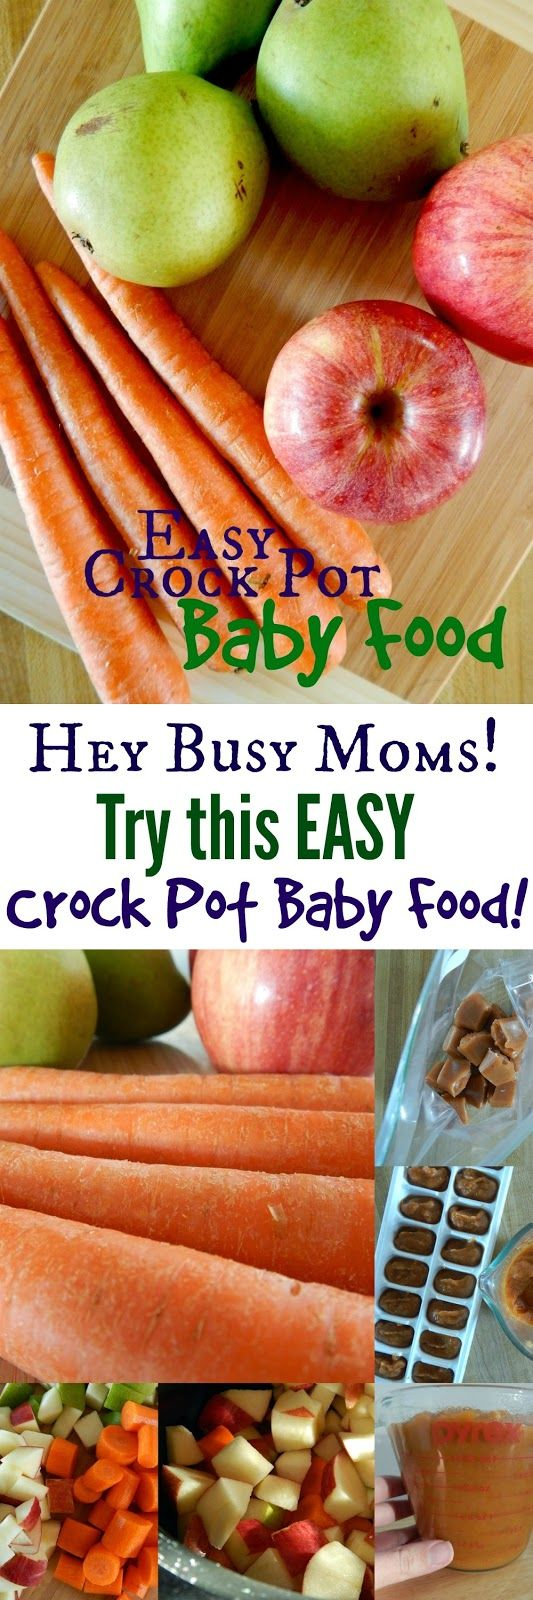 recipe: what apples are best for baby food [20]